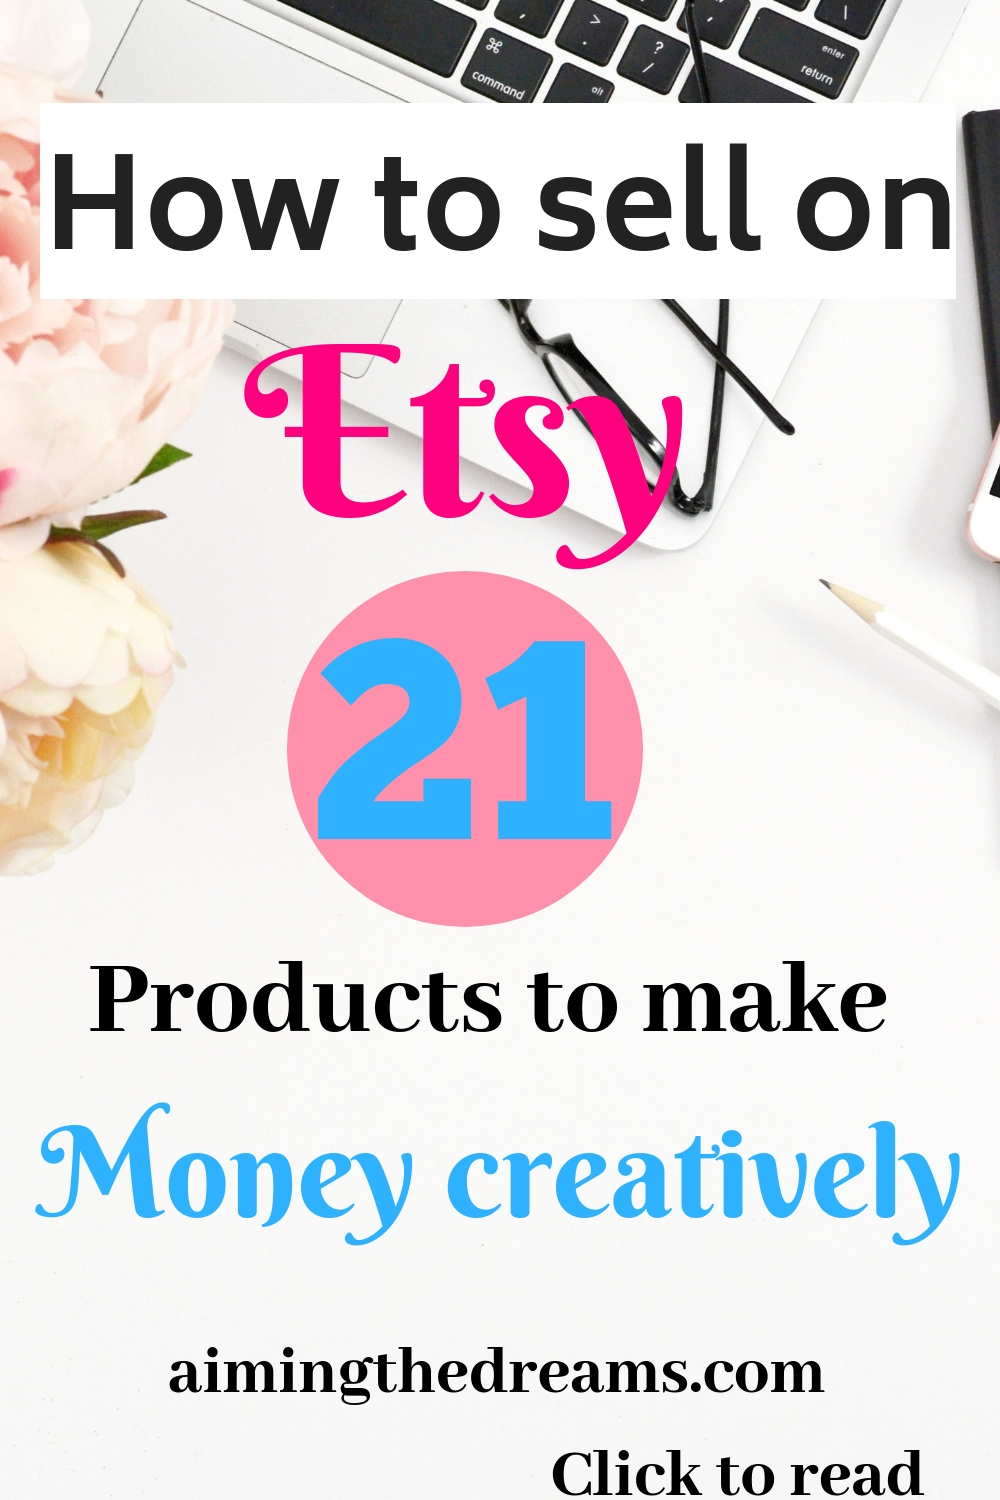 Etsy shop ideas to make money with your creaticity. click to read